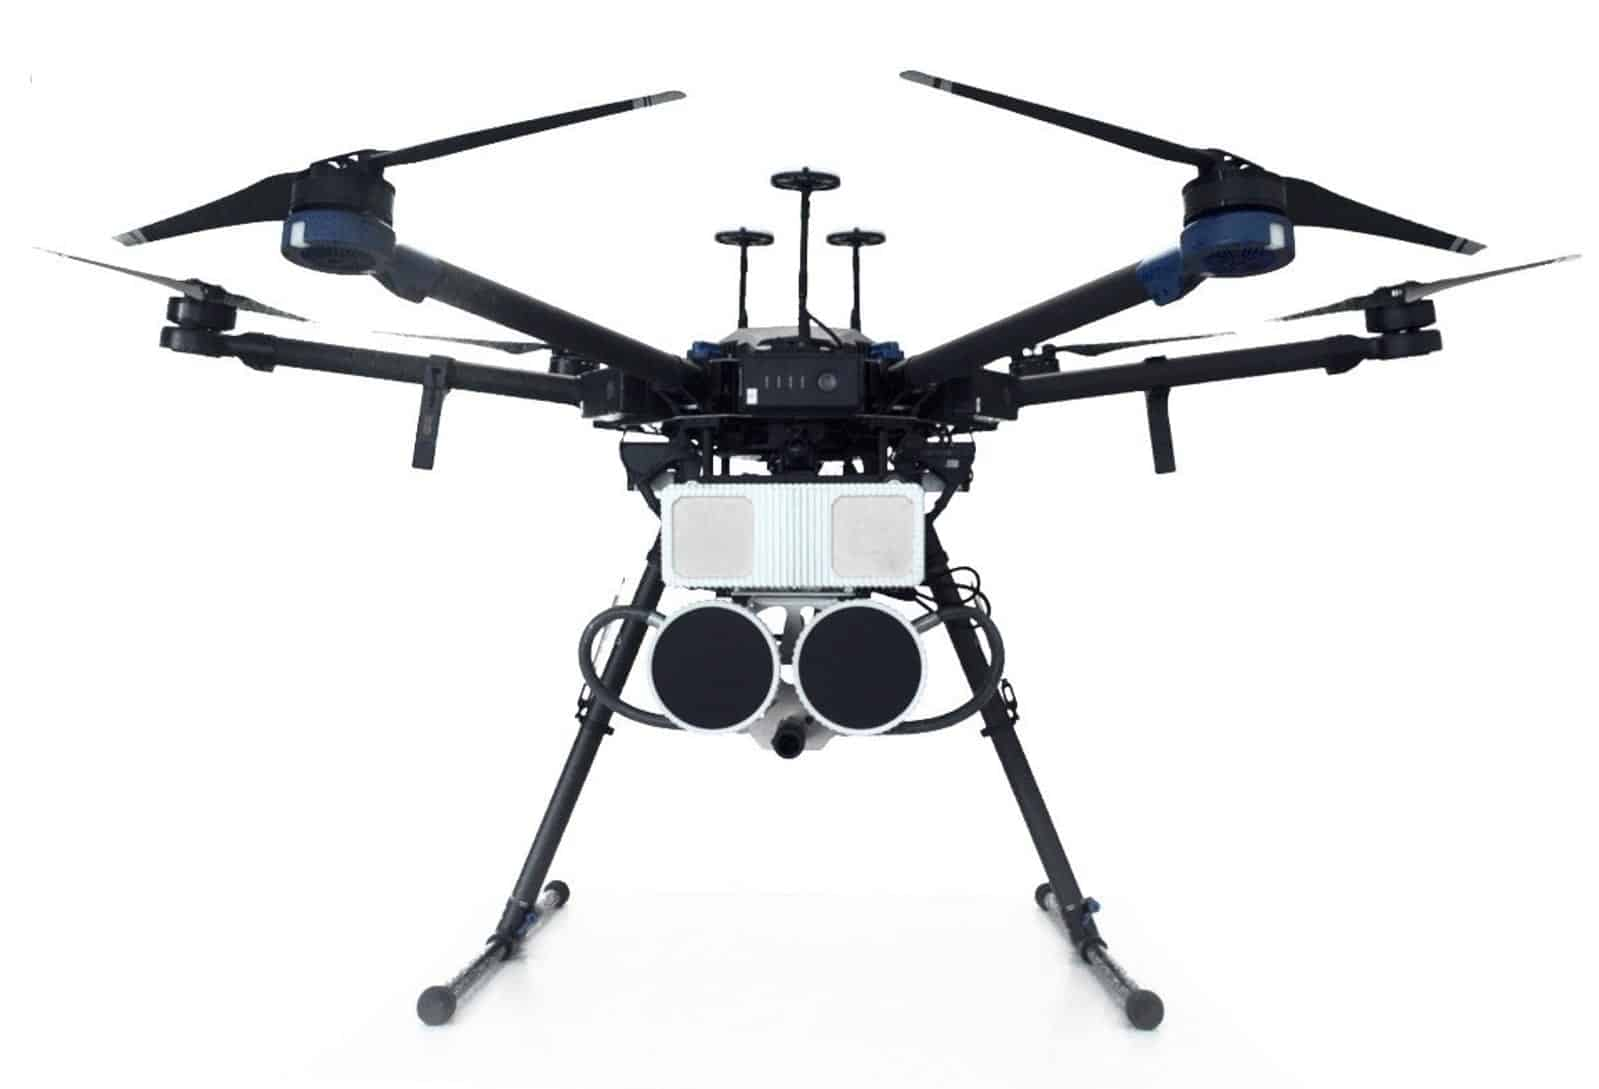 New Counter Uas Drone Uses Ai Enabled Radar Technology